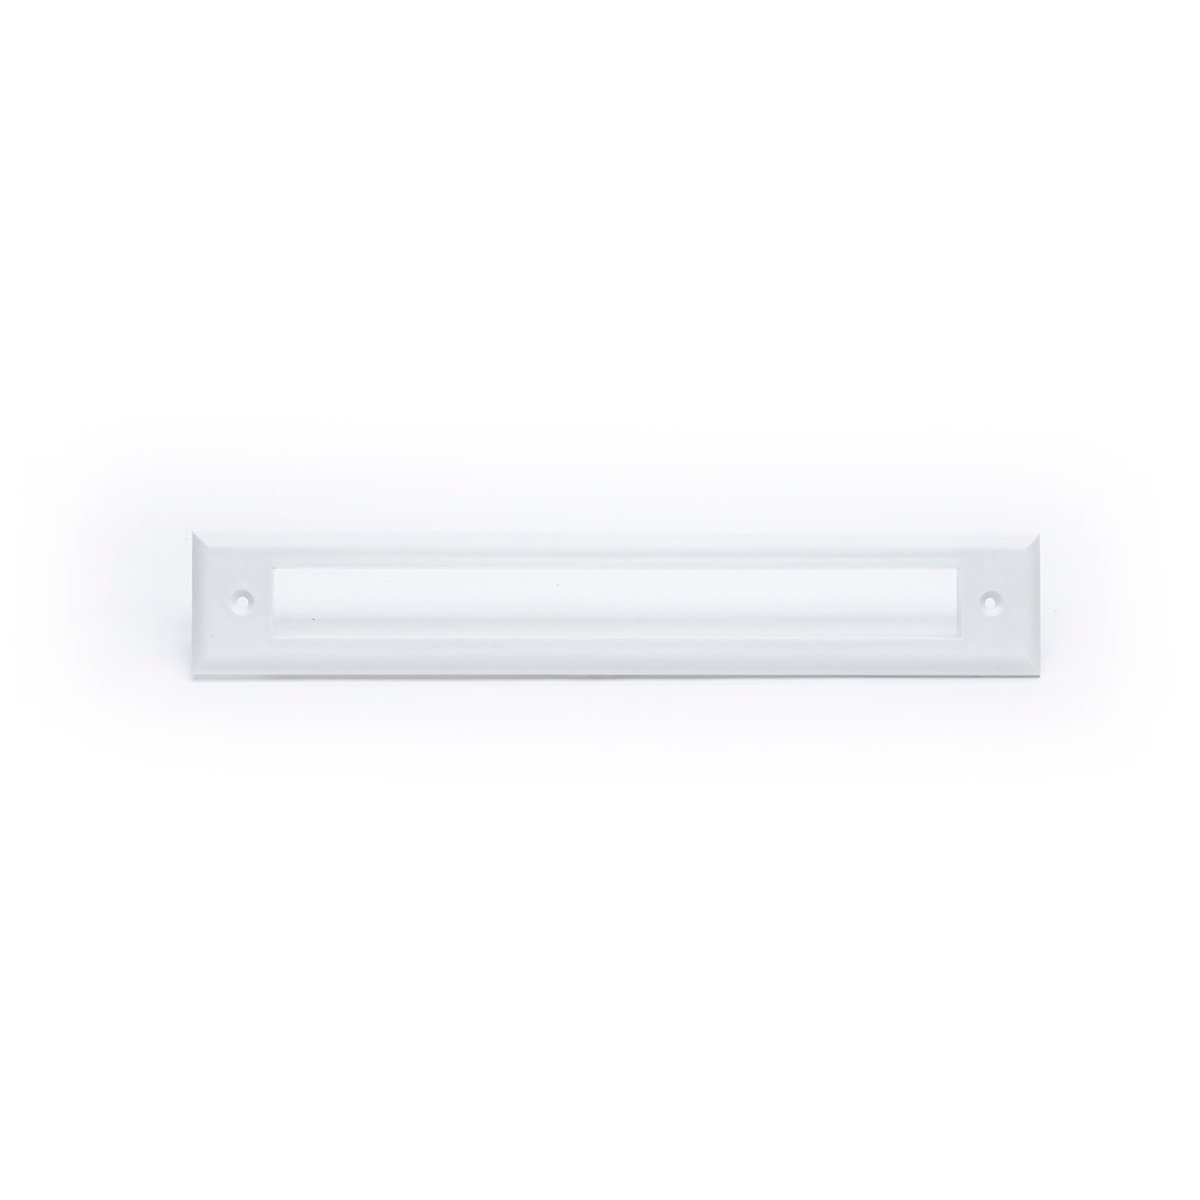 Slotted Outlet Face Plate, White, UPC-66